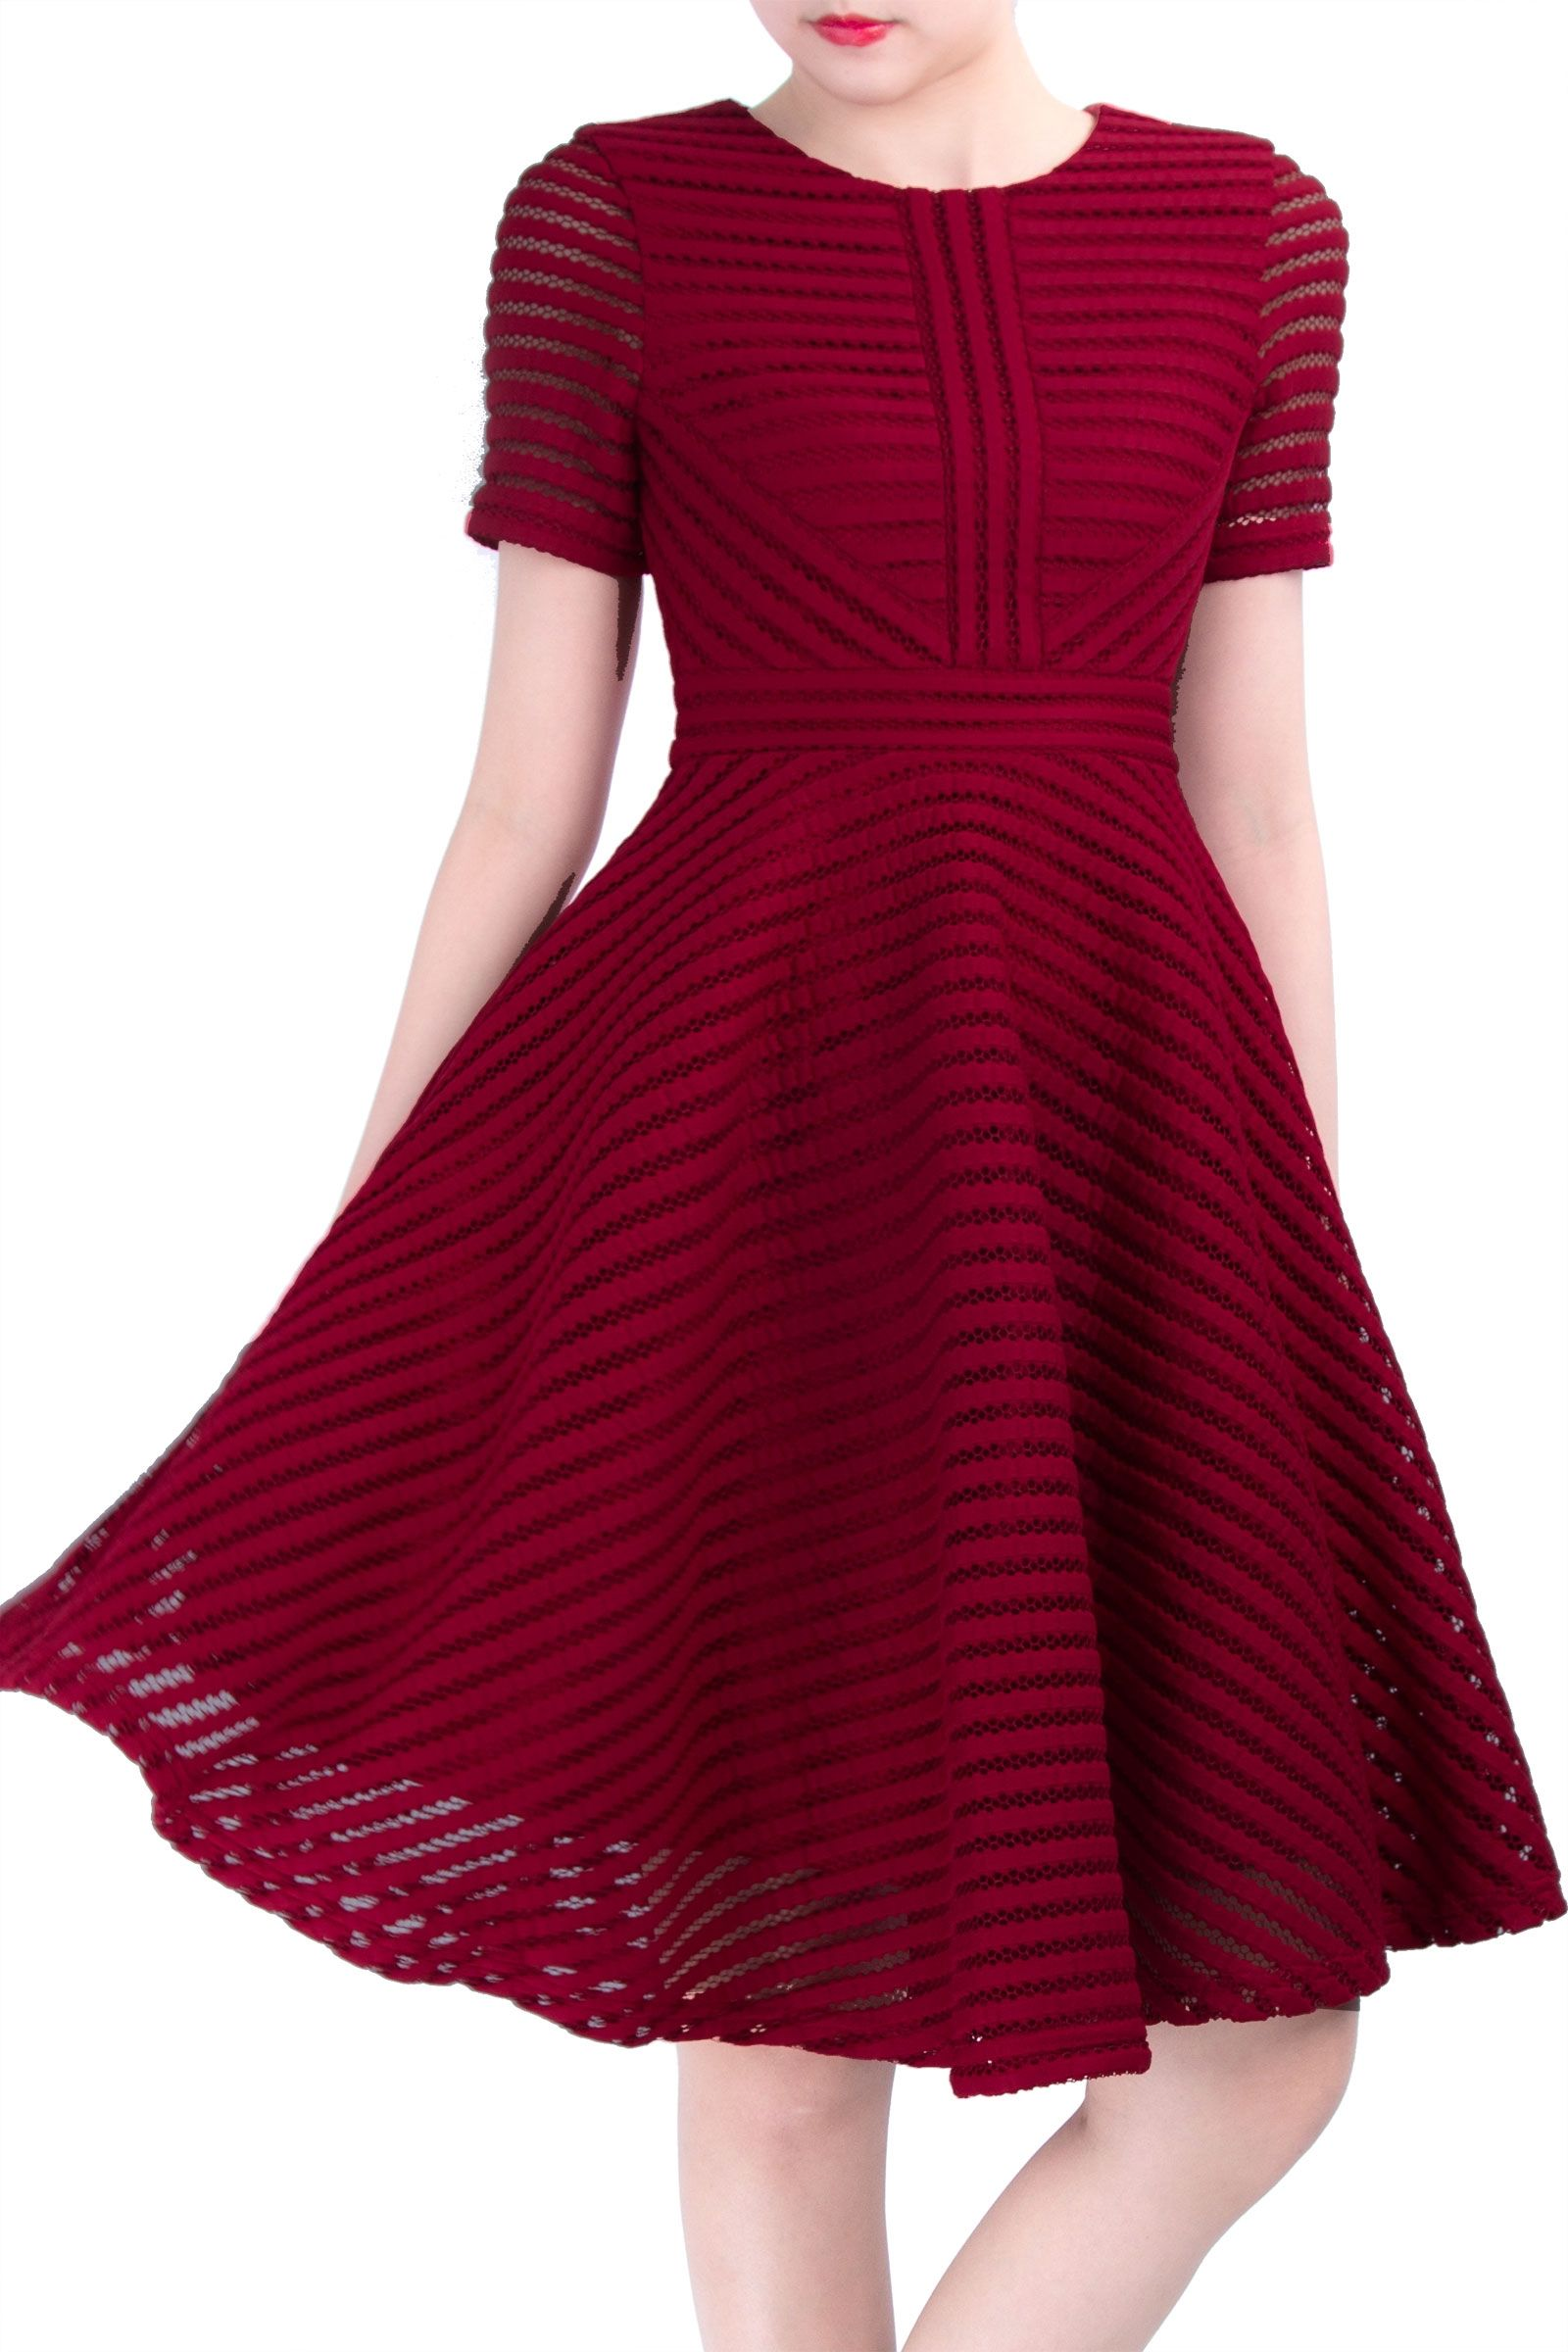 DYHARPER (DARK RED)  SIZE M    Material : Netting polyester. Not Stretchable Details : Featuring scoop neckline, lining, structured flare mode and hidden back zip. Length: 100cm, Bust: 42-44cm, Waist: 34cm, Hips: Flare, Shoulder length: 34cm, Sleeve length: 21cm, Arm hole: 21cm, Sleeve: 14cm Length:39.25 inches, Bust:16.5-17.25 inches, Waist:13.5 inches, Hips: Flare, Shoulder length:13.5 inches, Sleeve length:8.25 inches, Arm hole:8.25 inches, Sleeve:5.5 inches